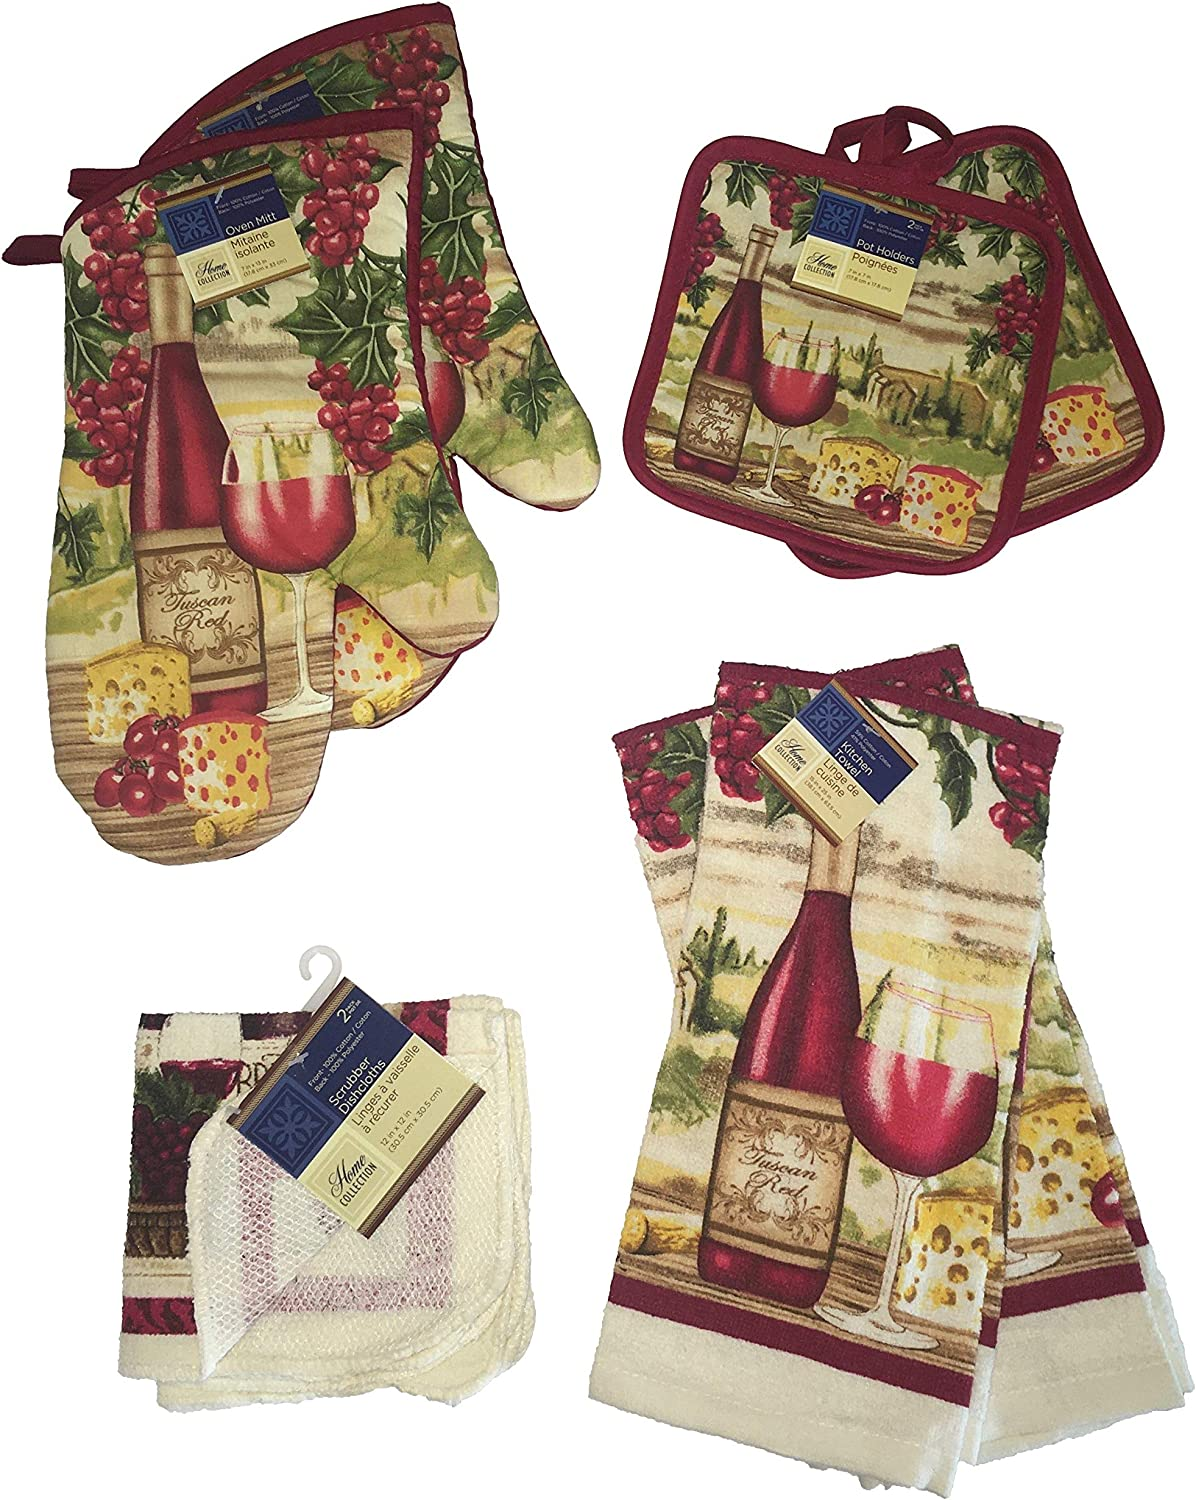 Kitchen Linen Set: Tuscan Red Wine & Cheese